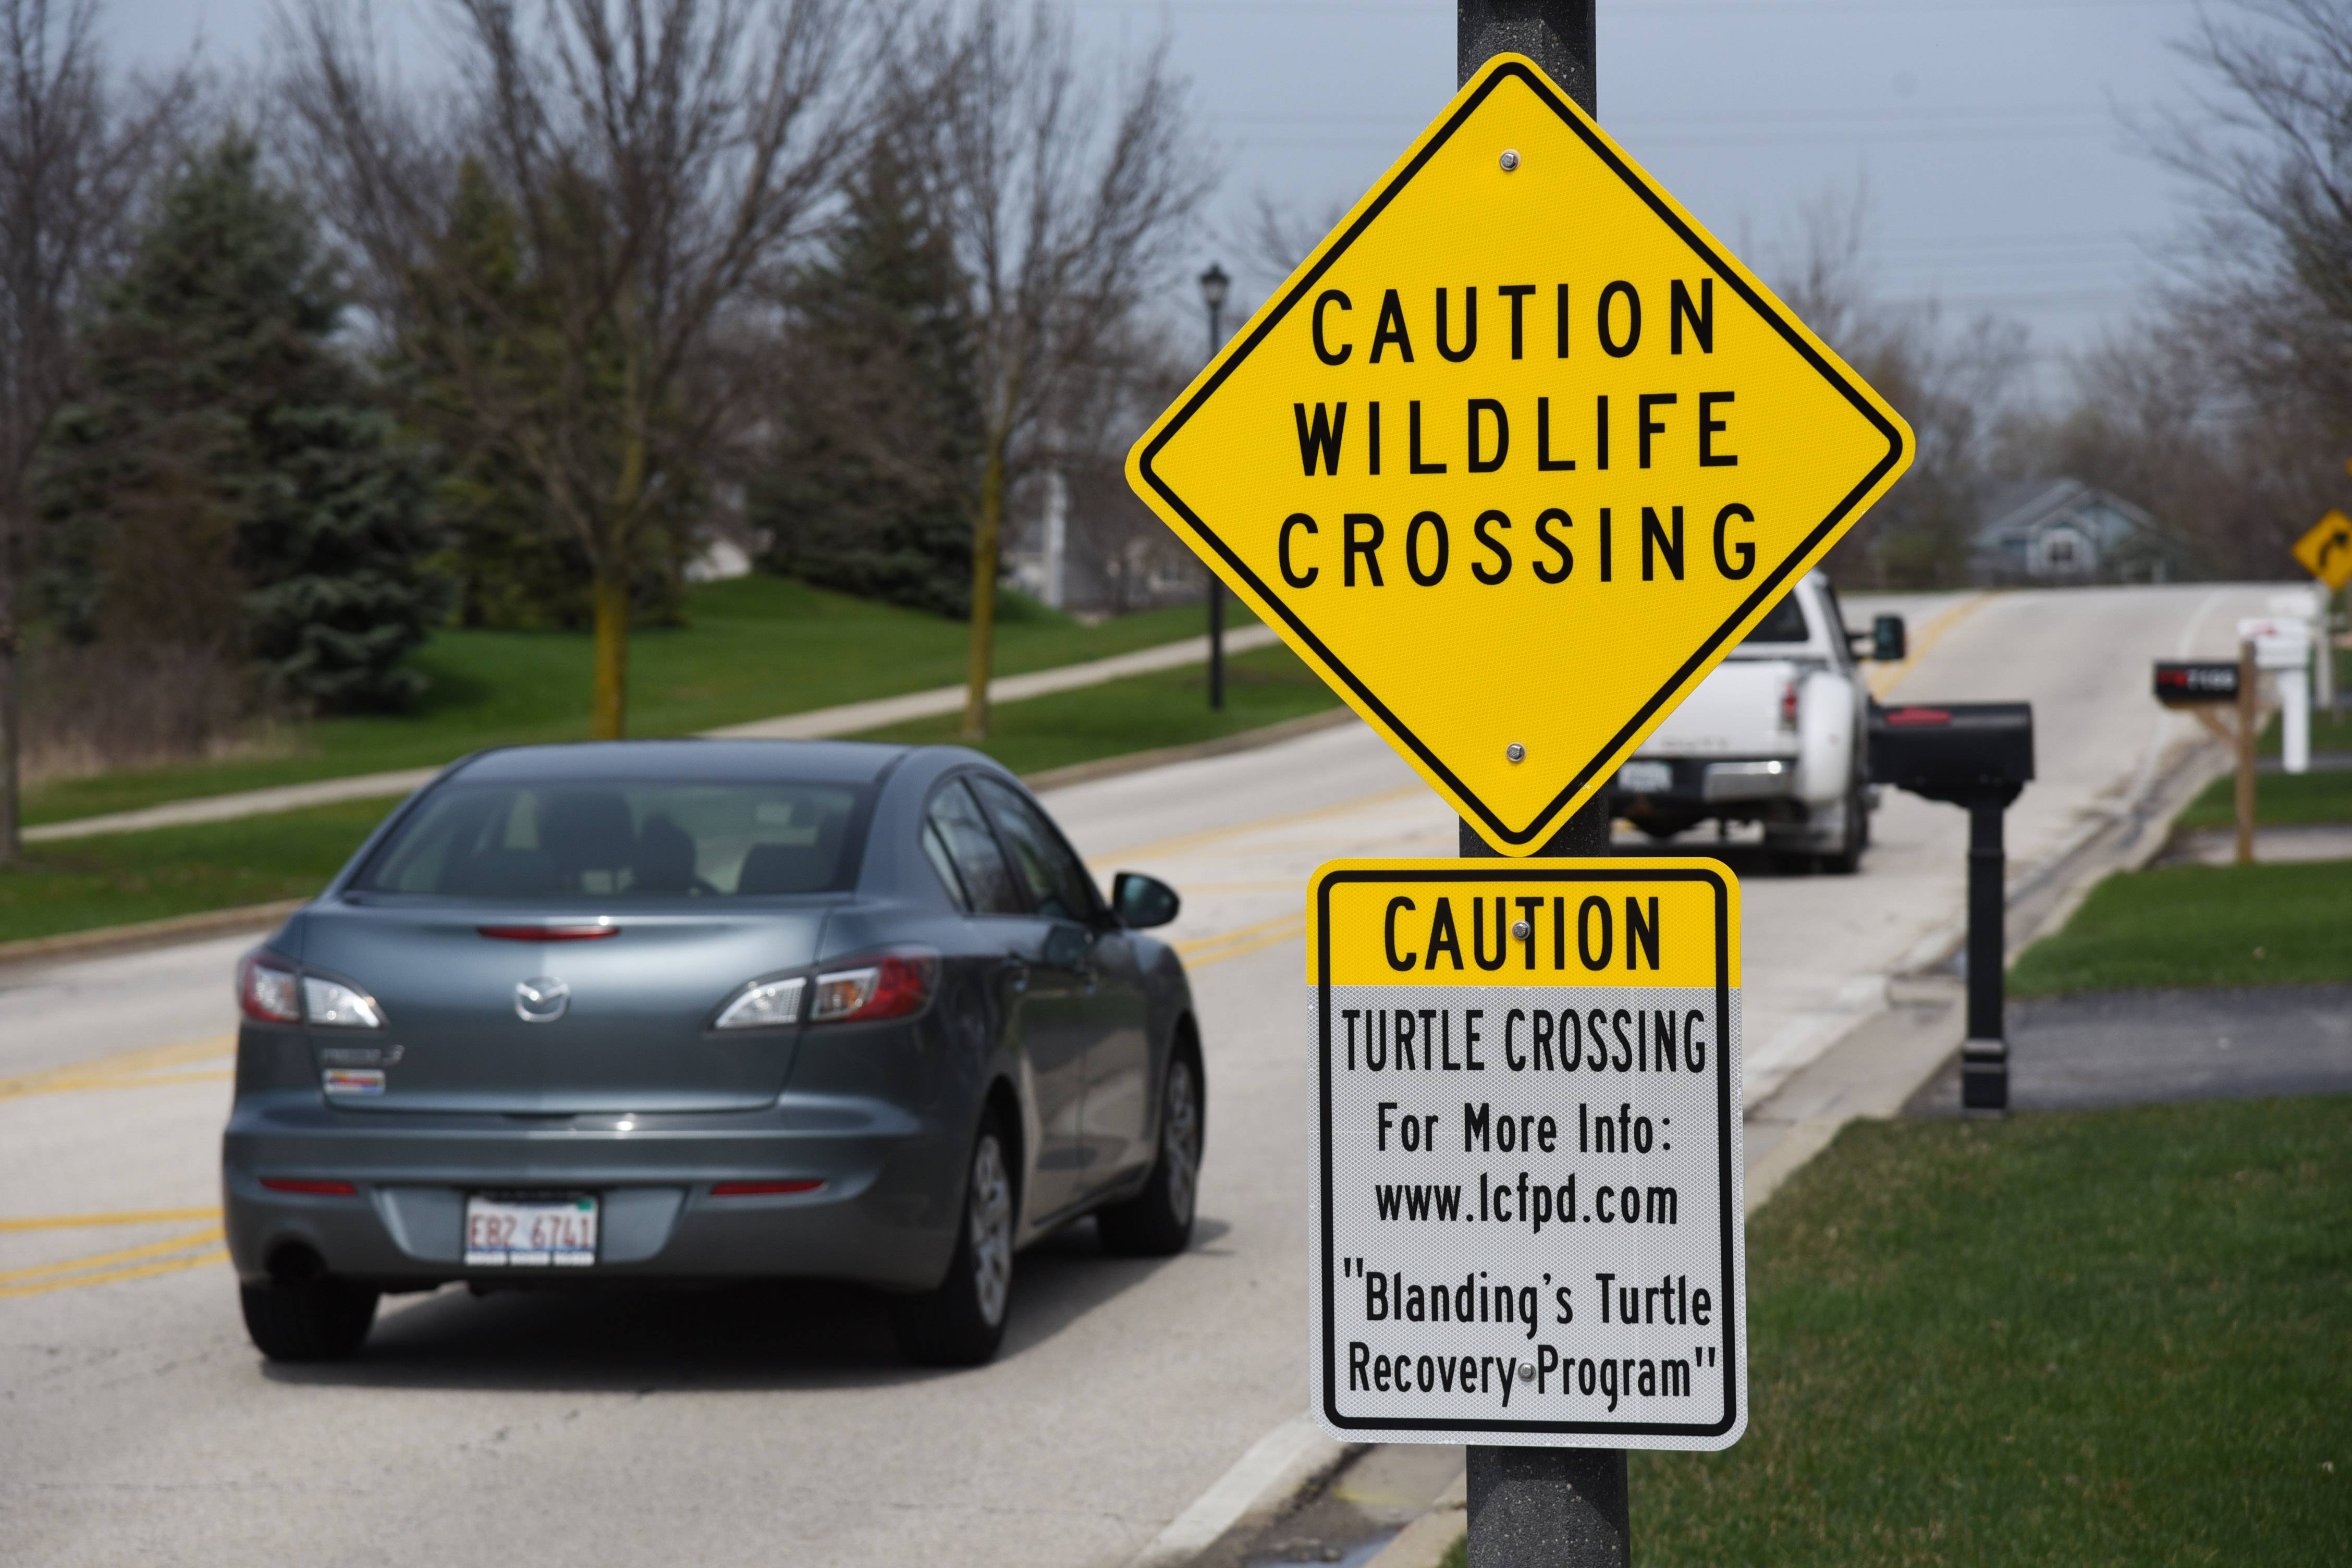 Two Prairie Crossing Charter School students lobbied for turtle crossing signs as part of a project.